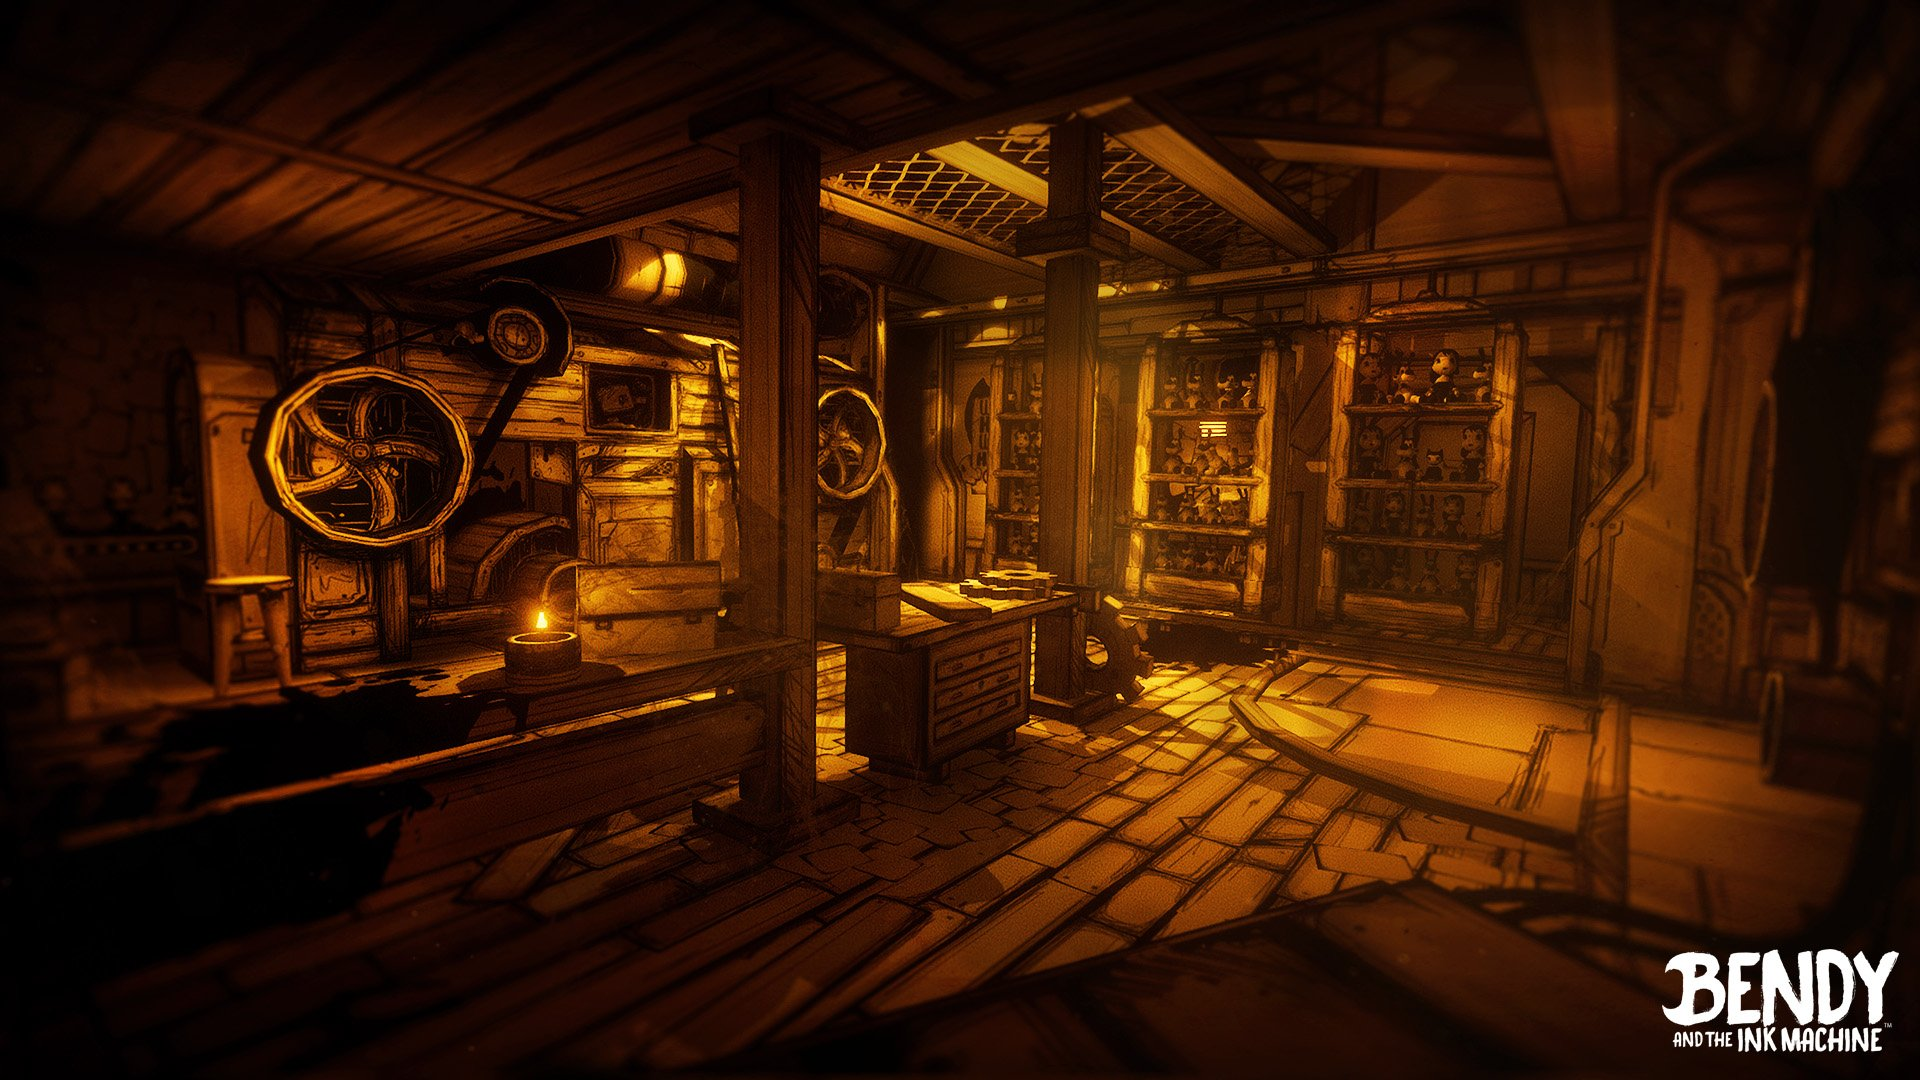 Free Download Bendy And The Ink Machine Is Coming To Xbox One This